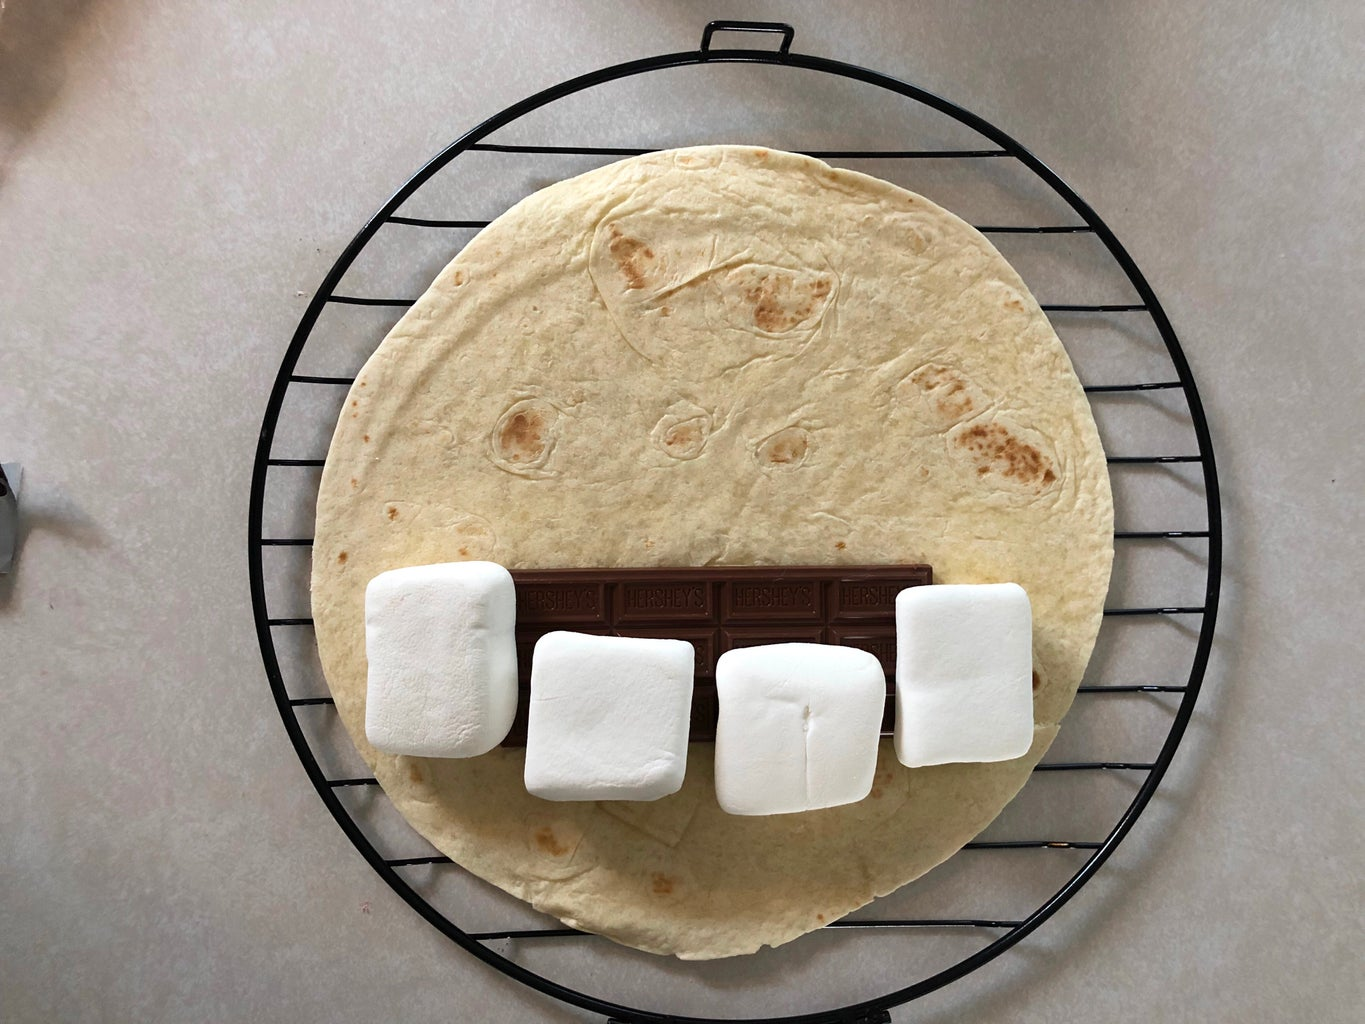 Step 2: Assemble Your S'moresadilla